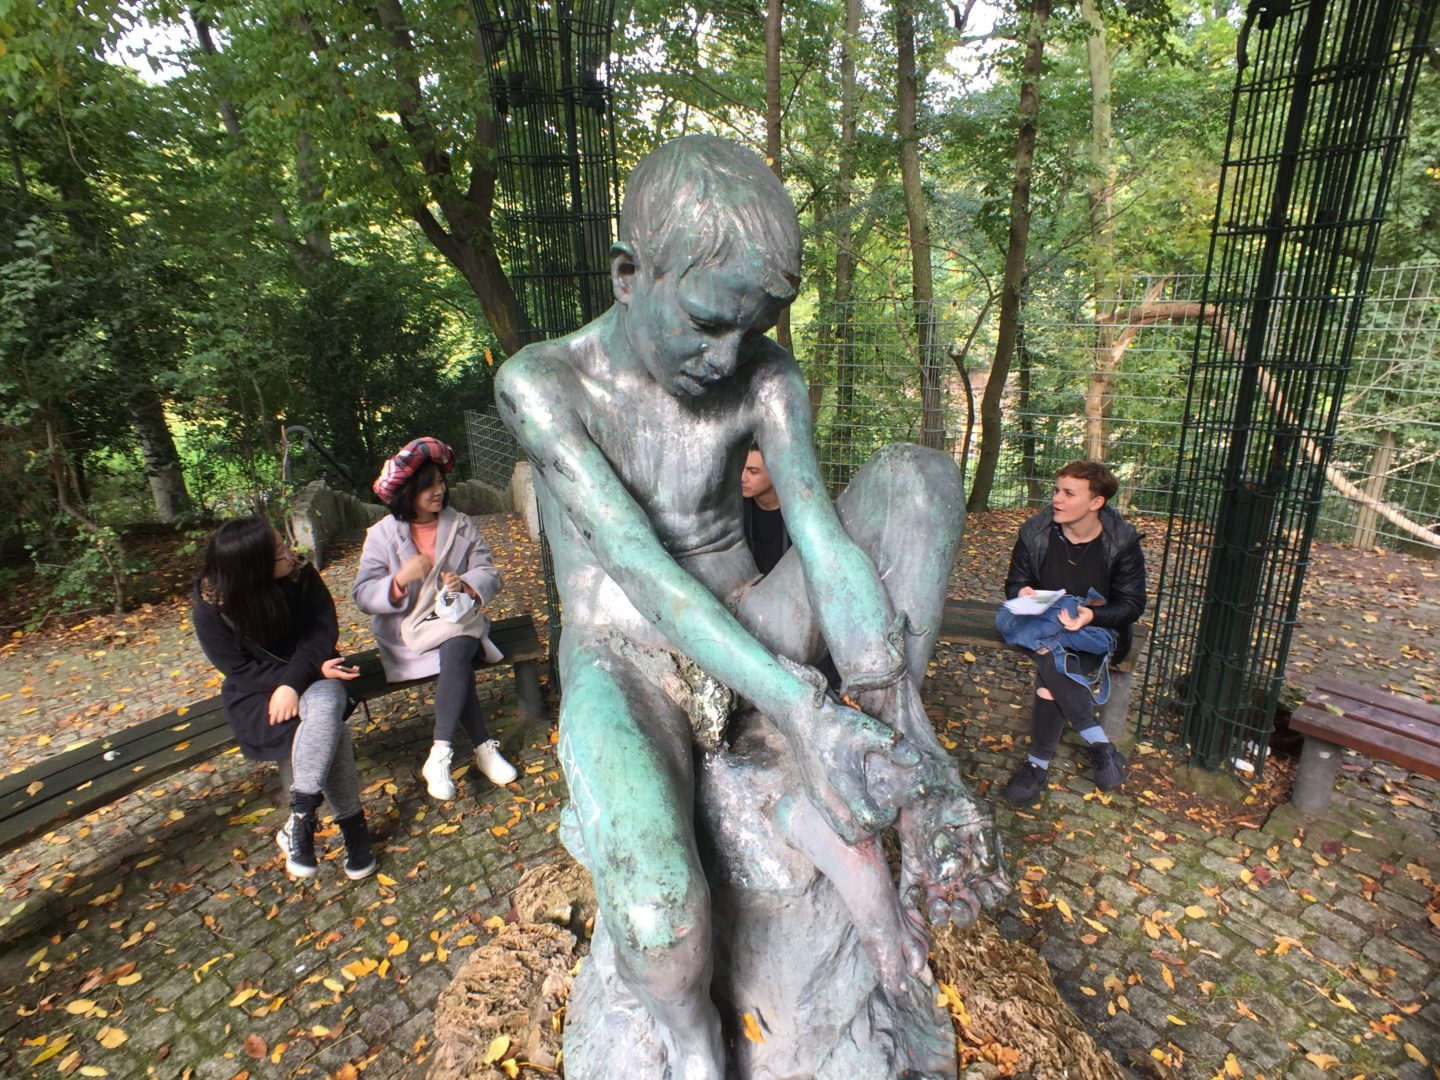 In the foreground is the sculpture of a boy fighting to remove an octopus from his left hand. The boy's face shows more resolve than fear. The sculpture is green bronze. In the background is a group of four people, sat on the bench chatting and having some lunch. The ground is covered in leaves. It is October and getting chilly.